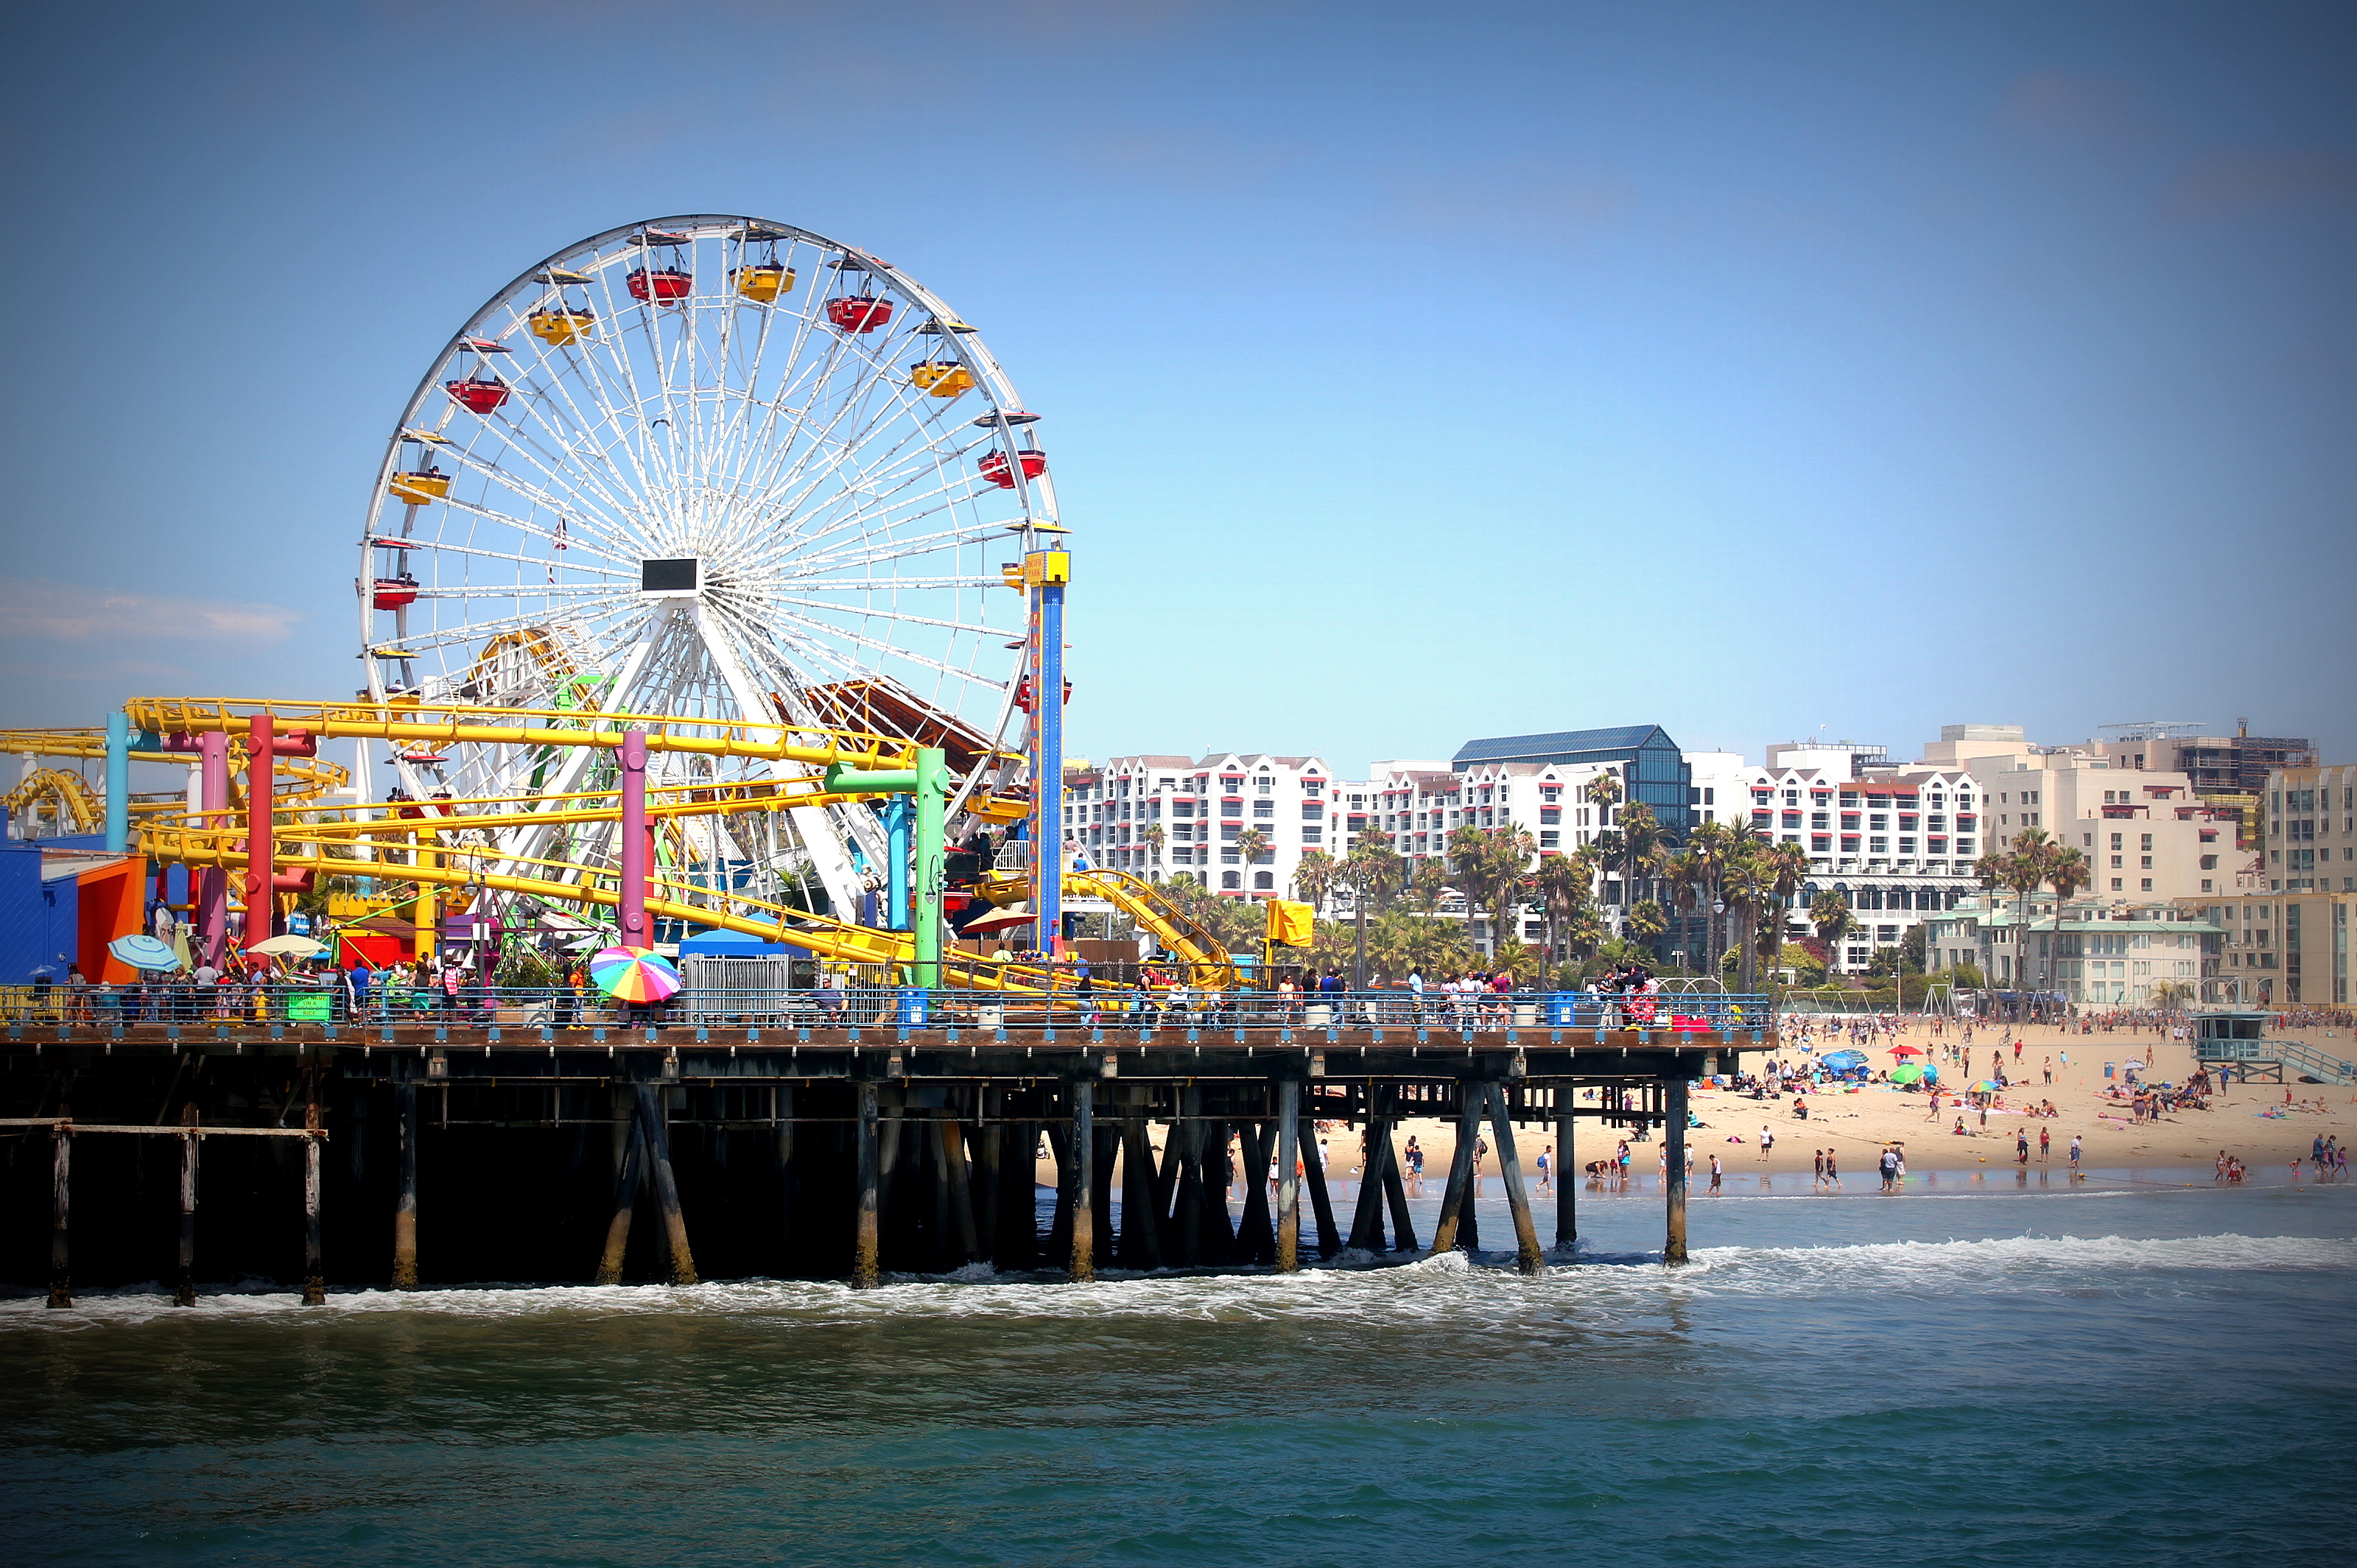 VIDEO: Afternoon at the Santa Monica Pier, California